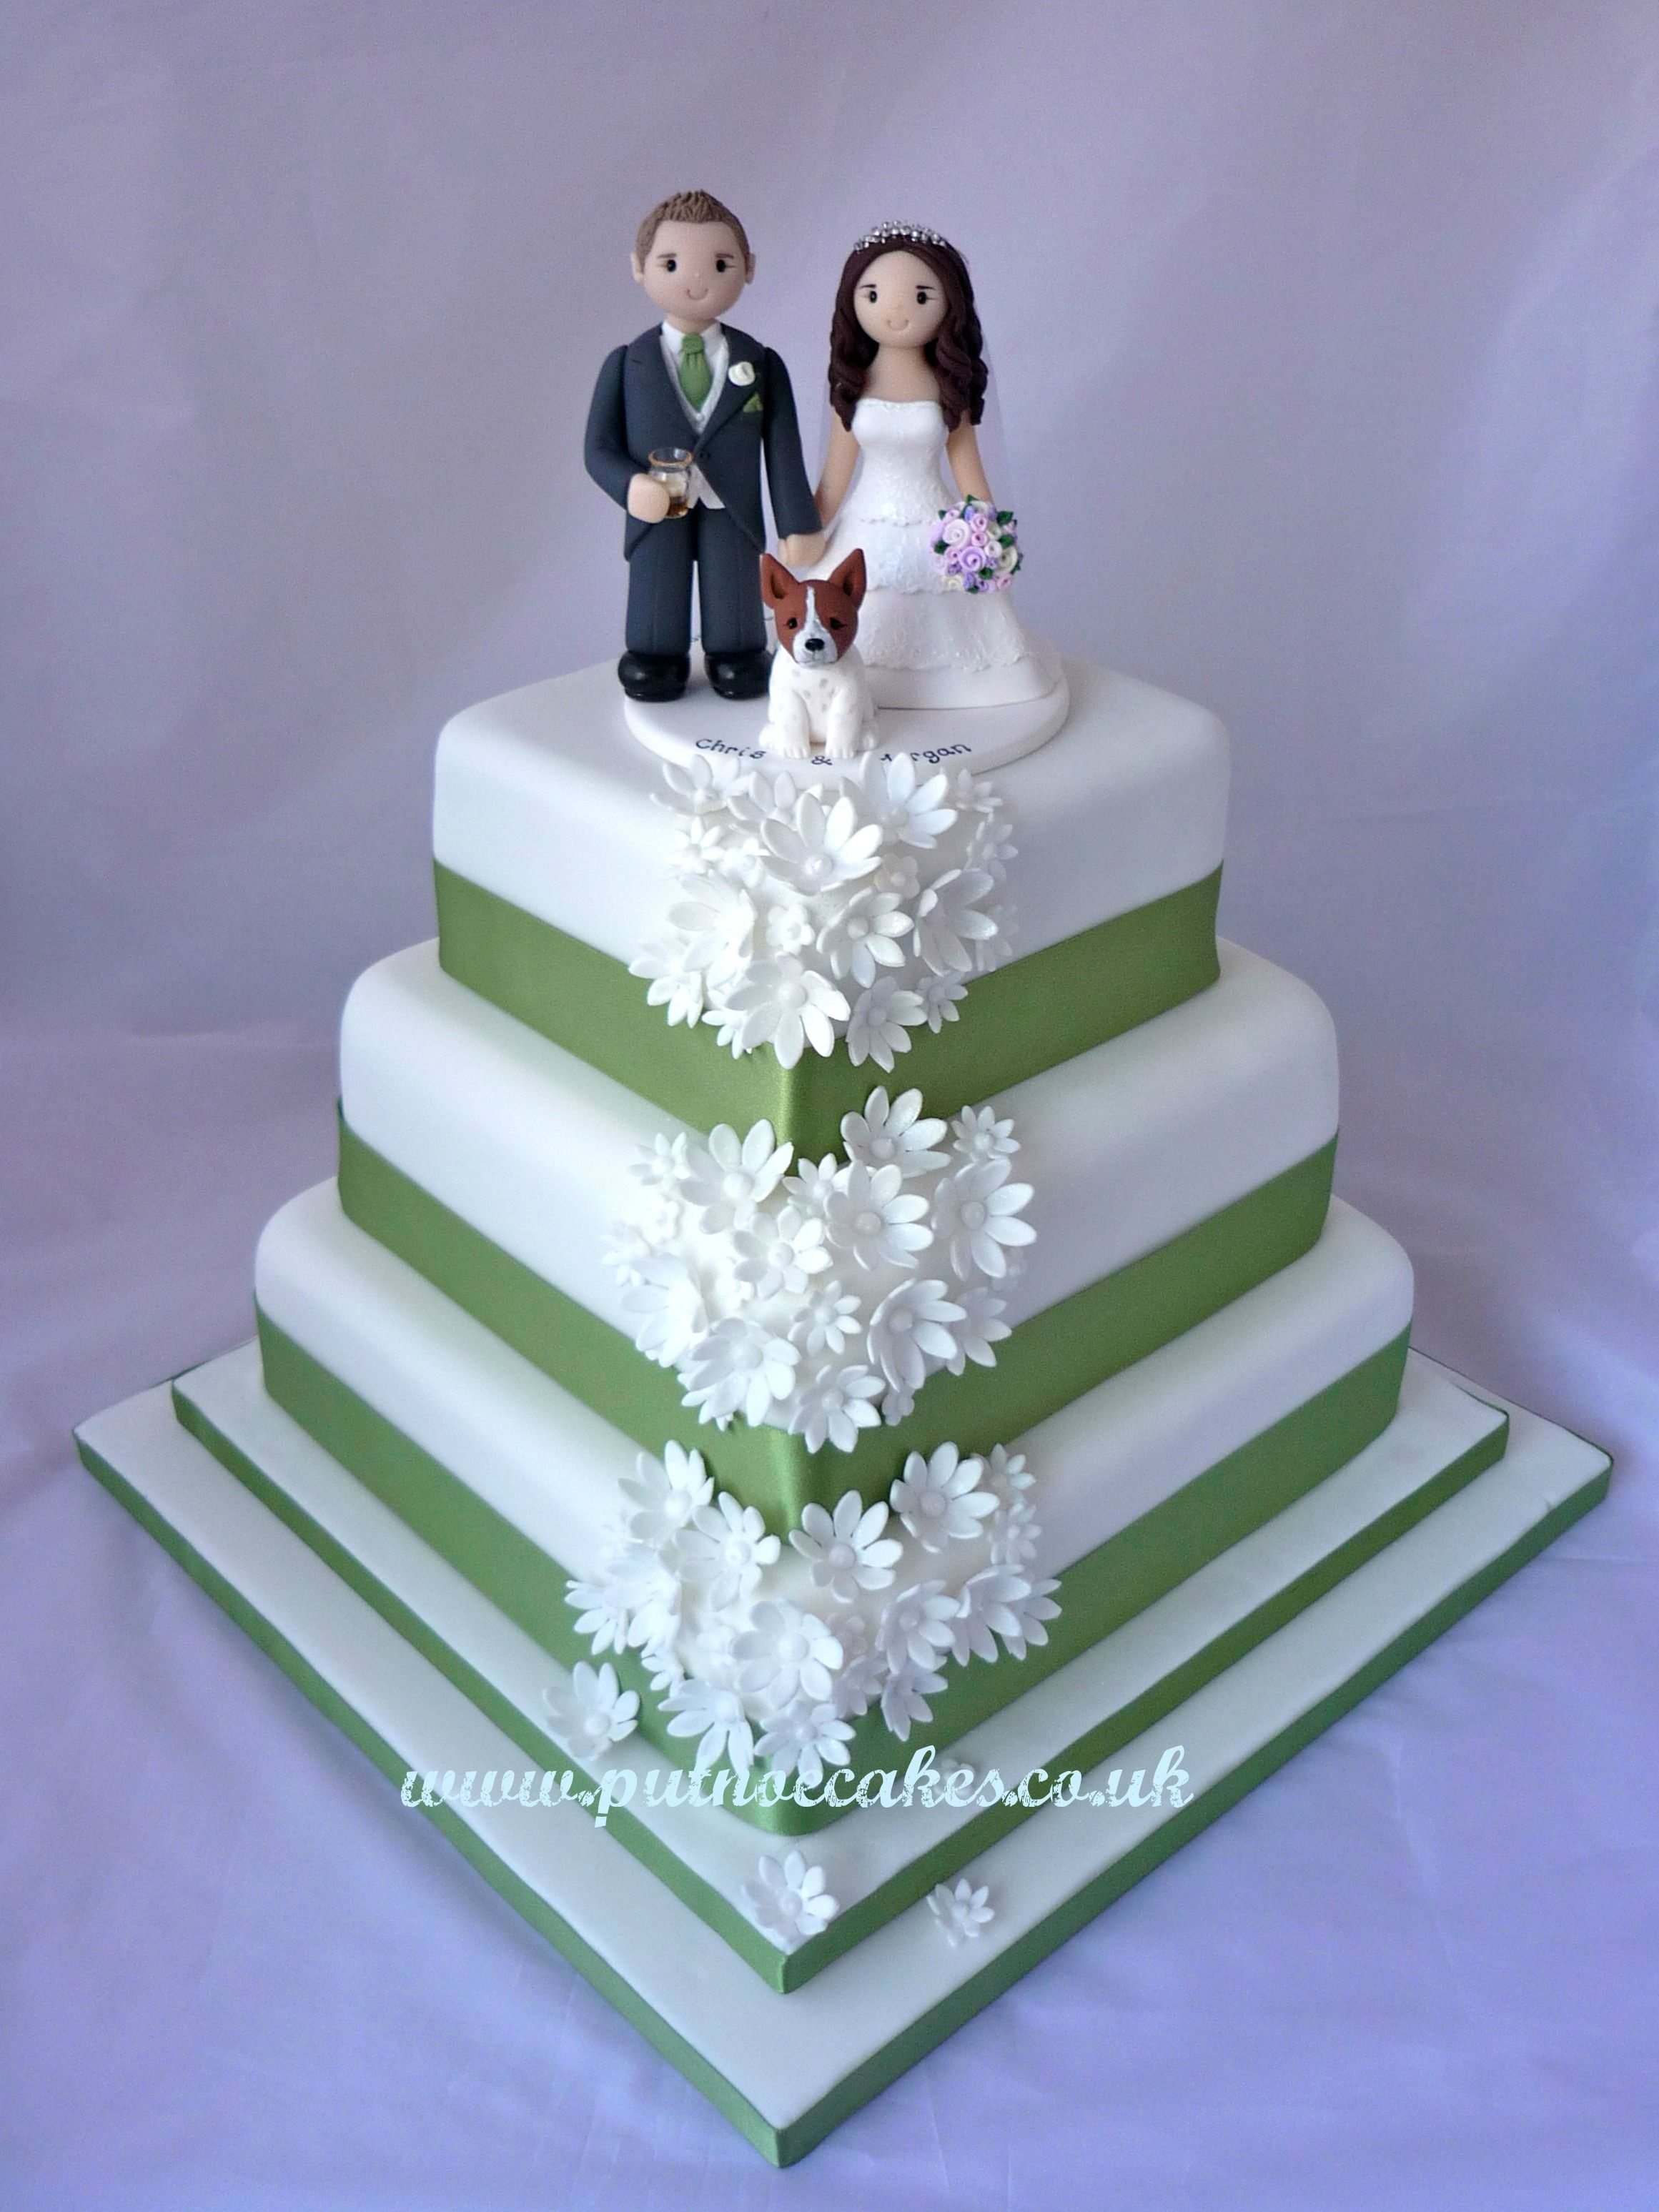 This cake was one of my favourites from the last year, I just love the colour scheme and simple design.  The topper is not mine but I think everything works well together.